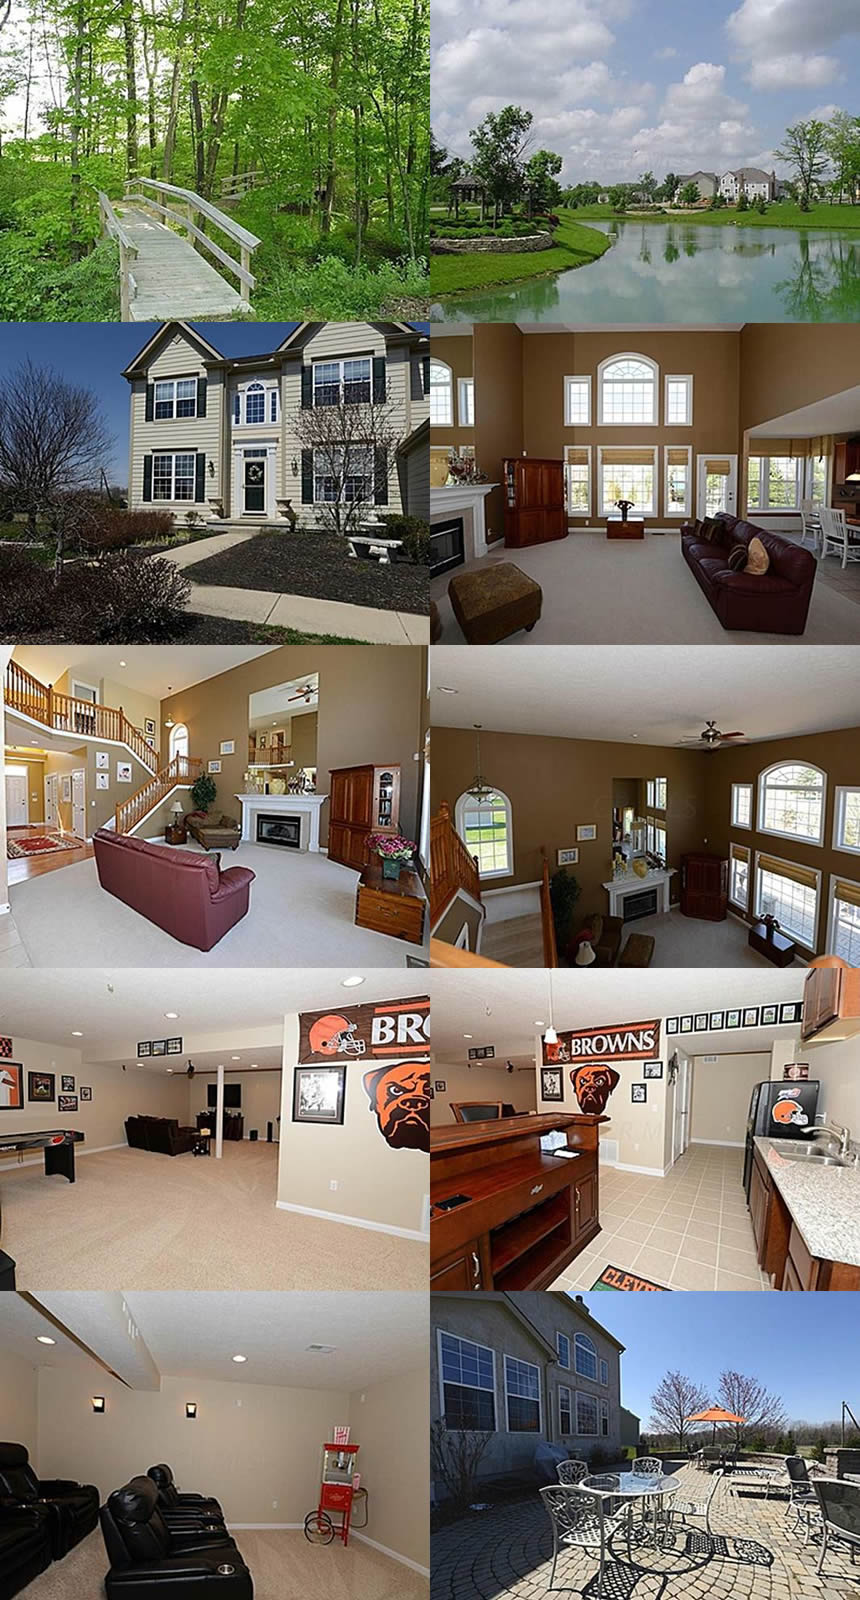 pictures of new home purchased  after successful RMCN Credit restoration